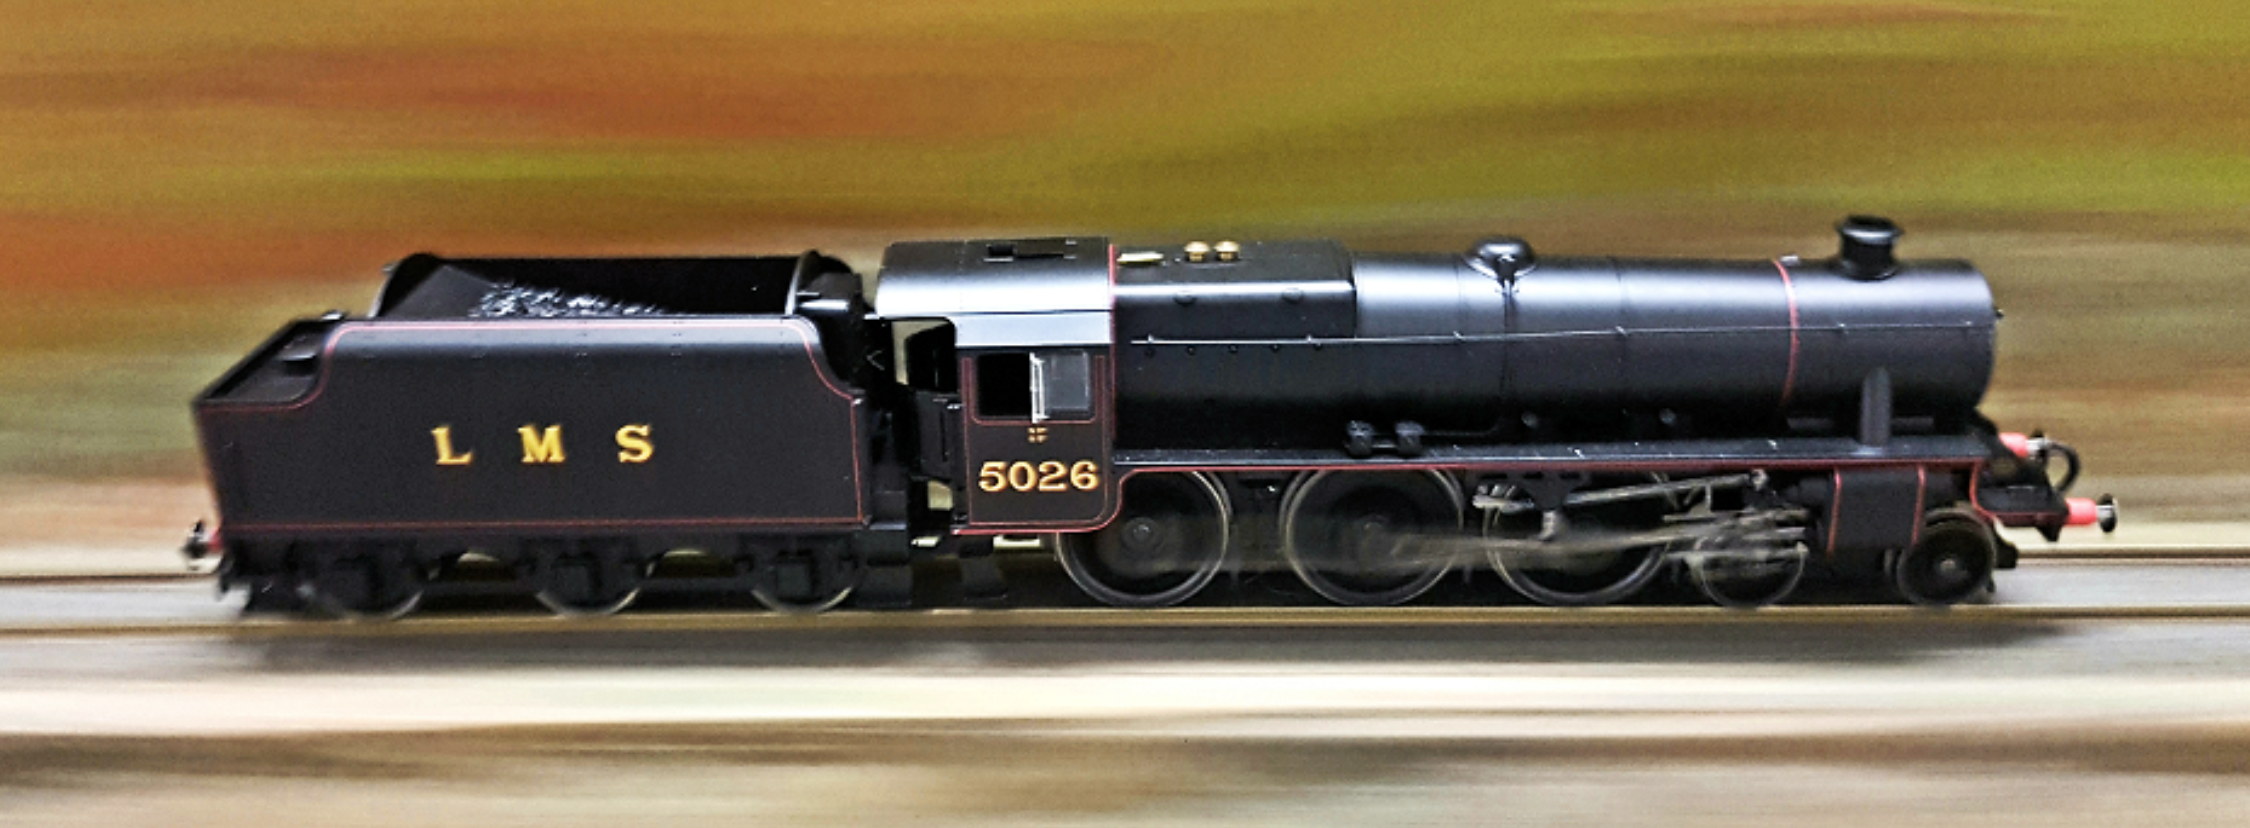 A Hornby Black Five photographed at speed out of doors                                               Photo courtesy of Marty van Doren, Ridgepointe Rail, Queensland, Australia.